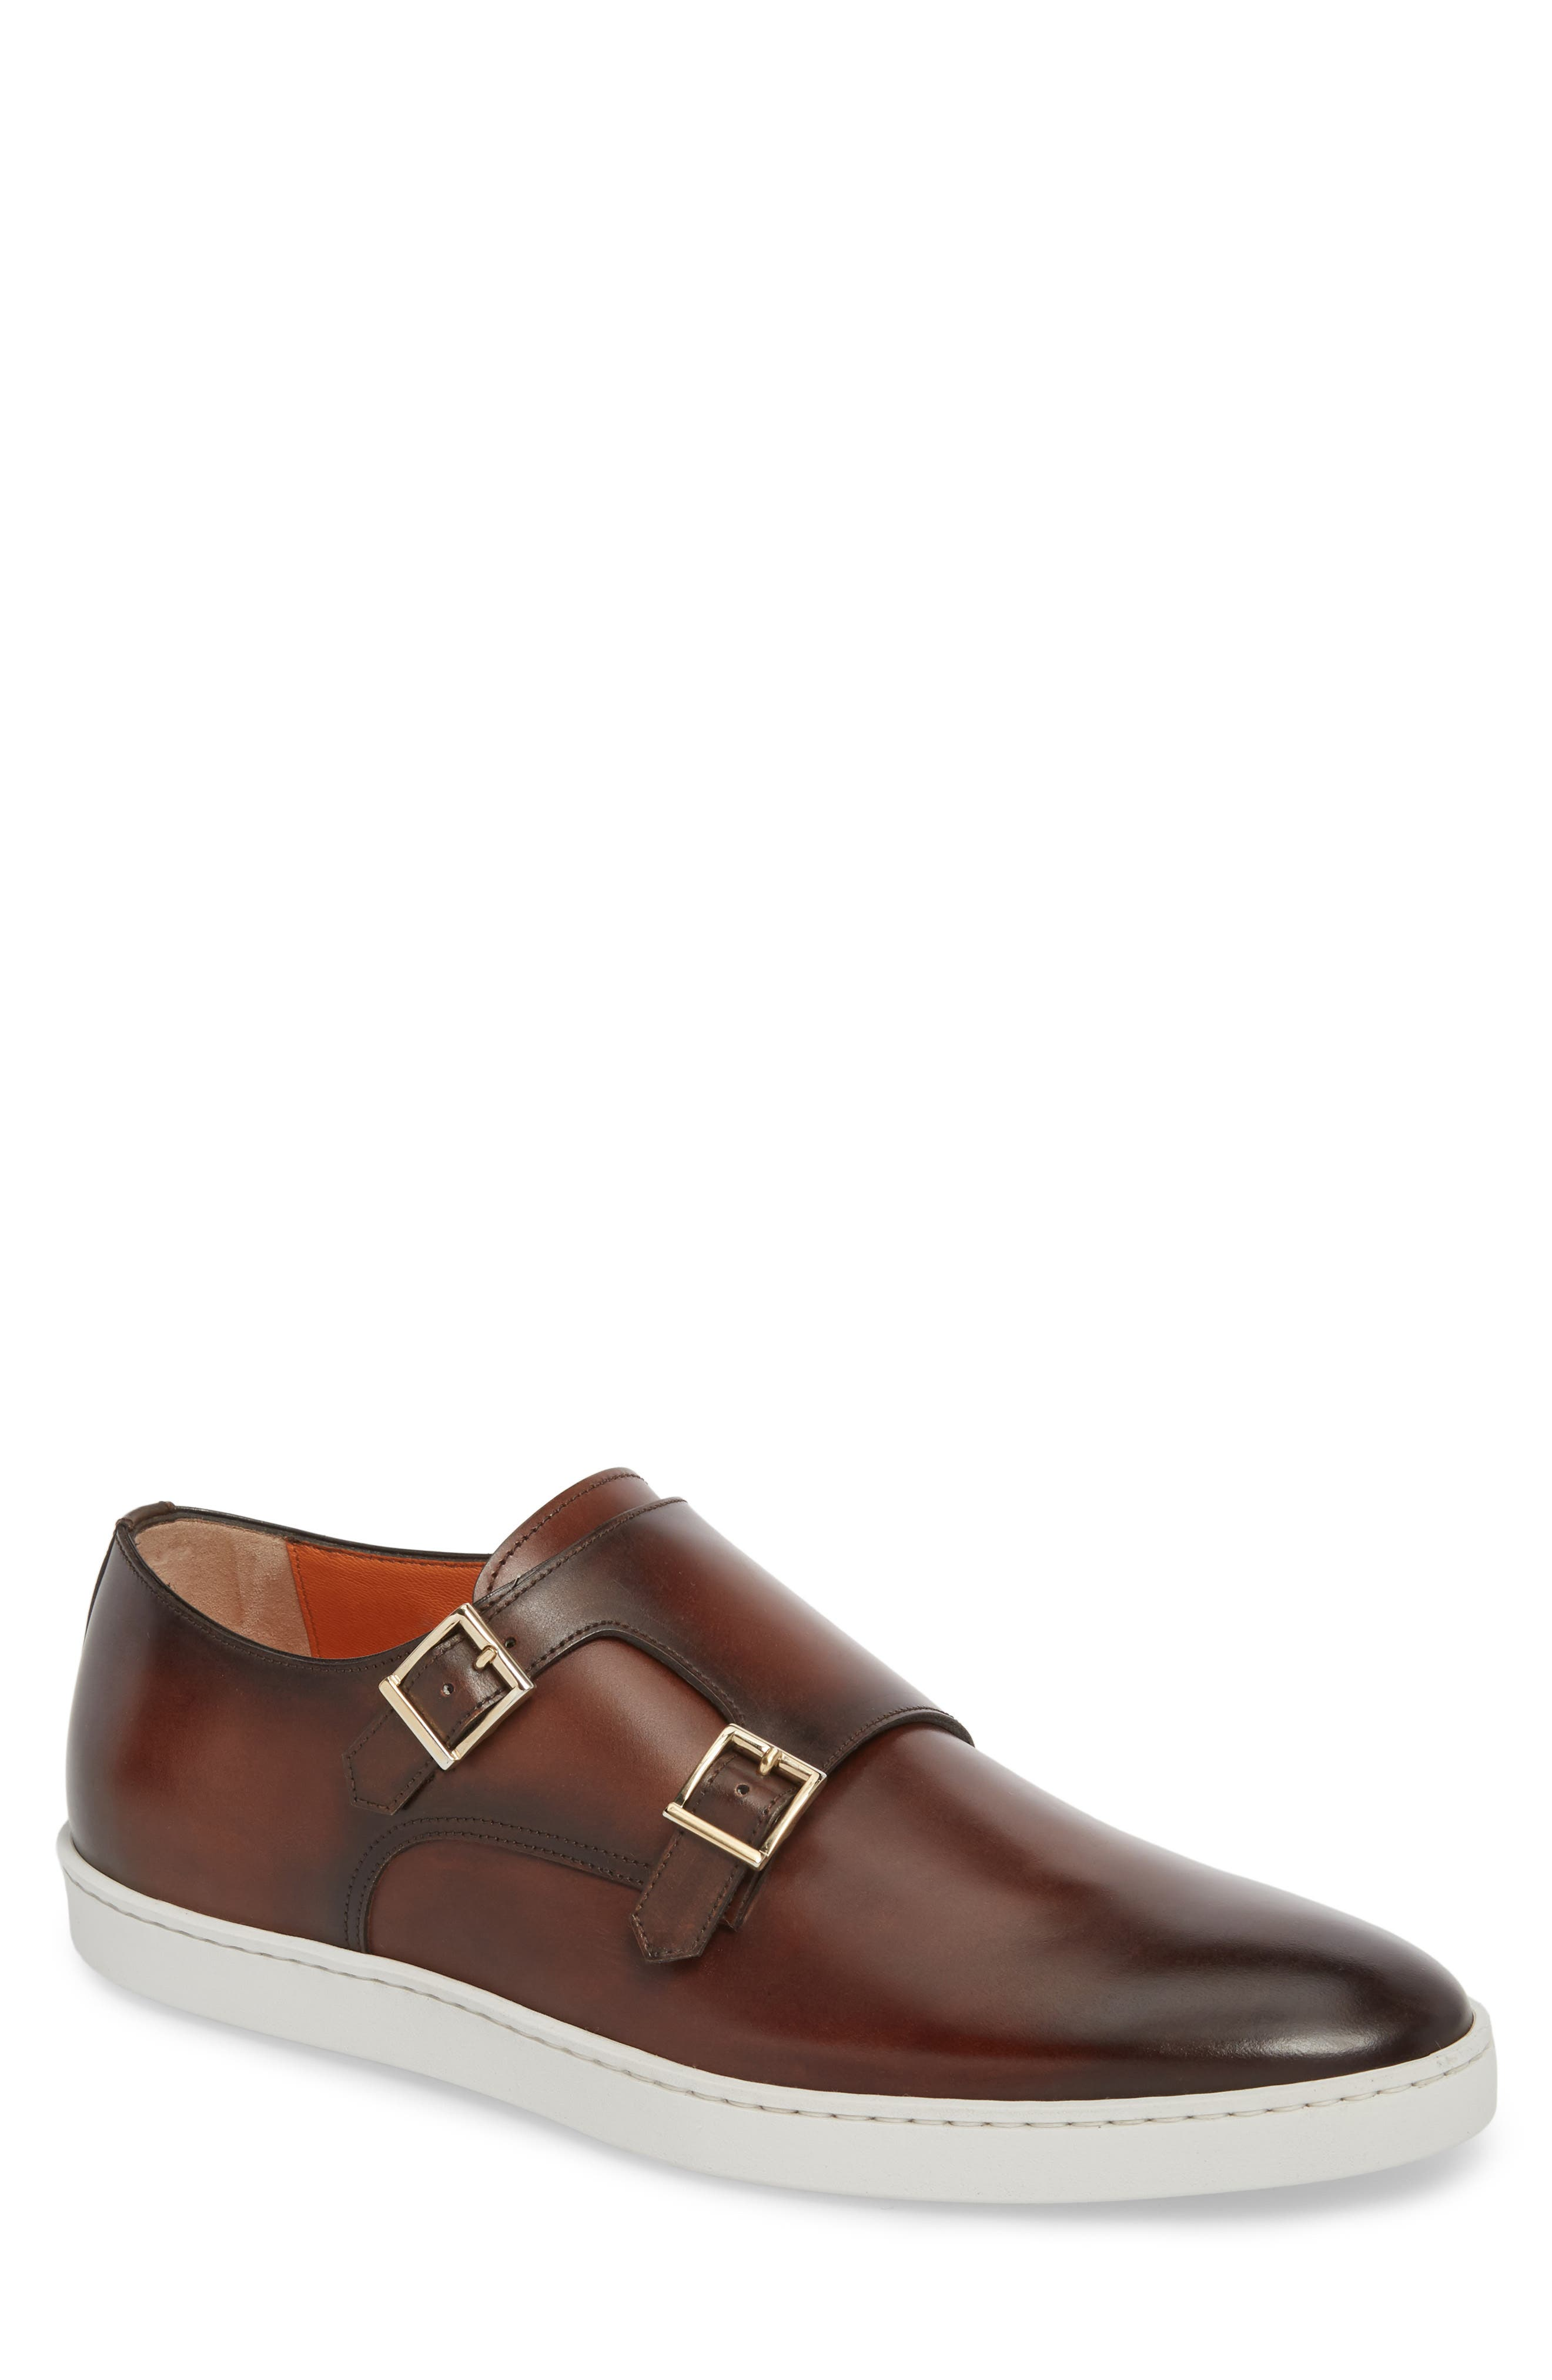 Freemont Double Monk Strap Shoe,                             Main thumbnail 1, color,                             Brown